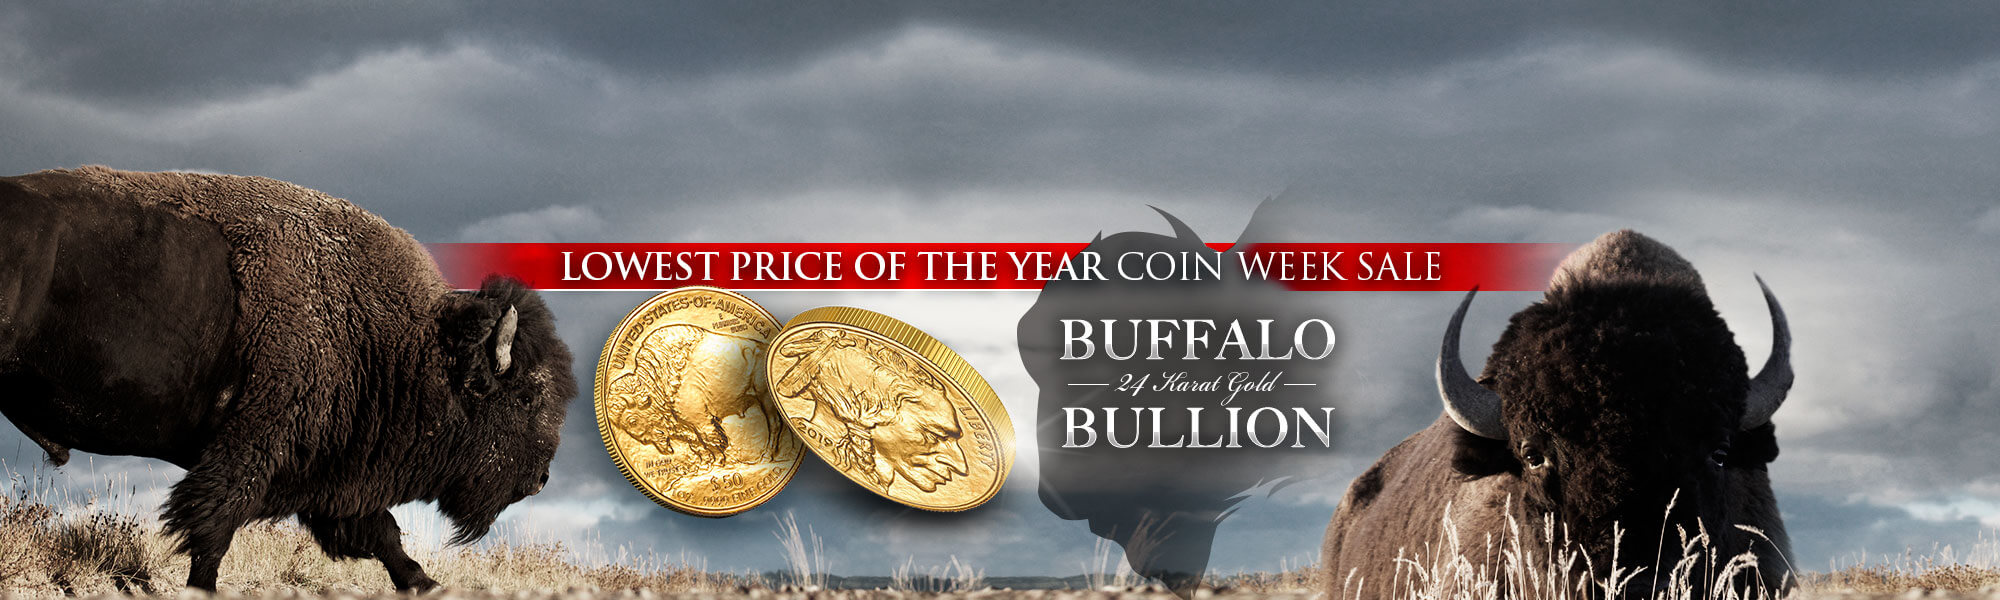 Lowest Price of the Year Coin Week Sale